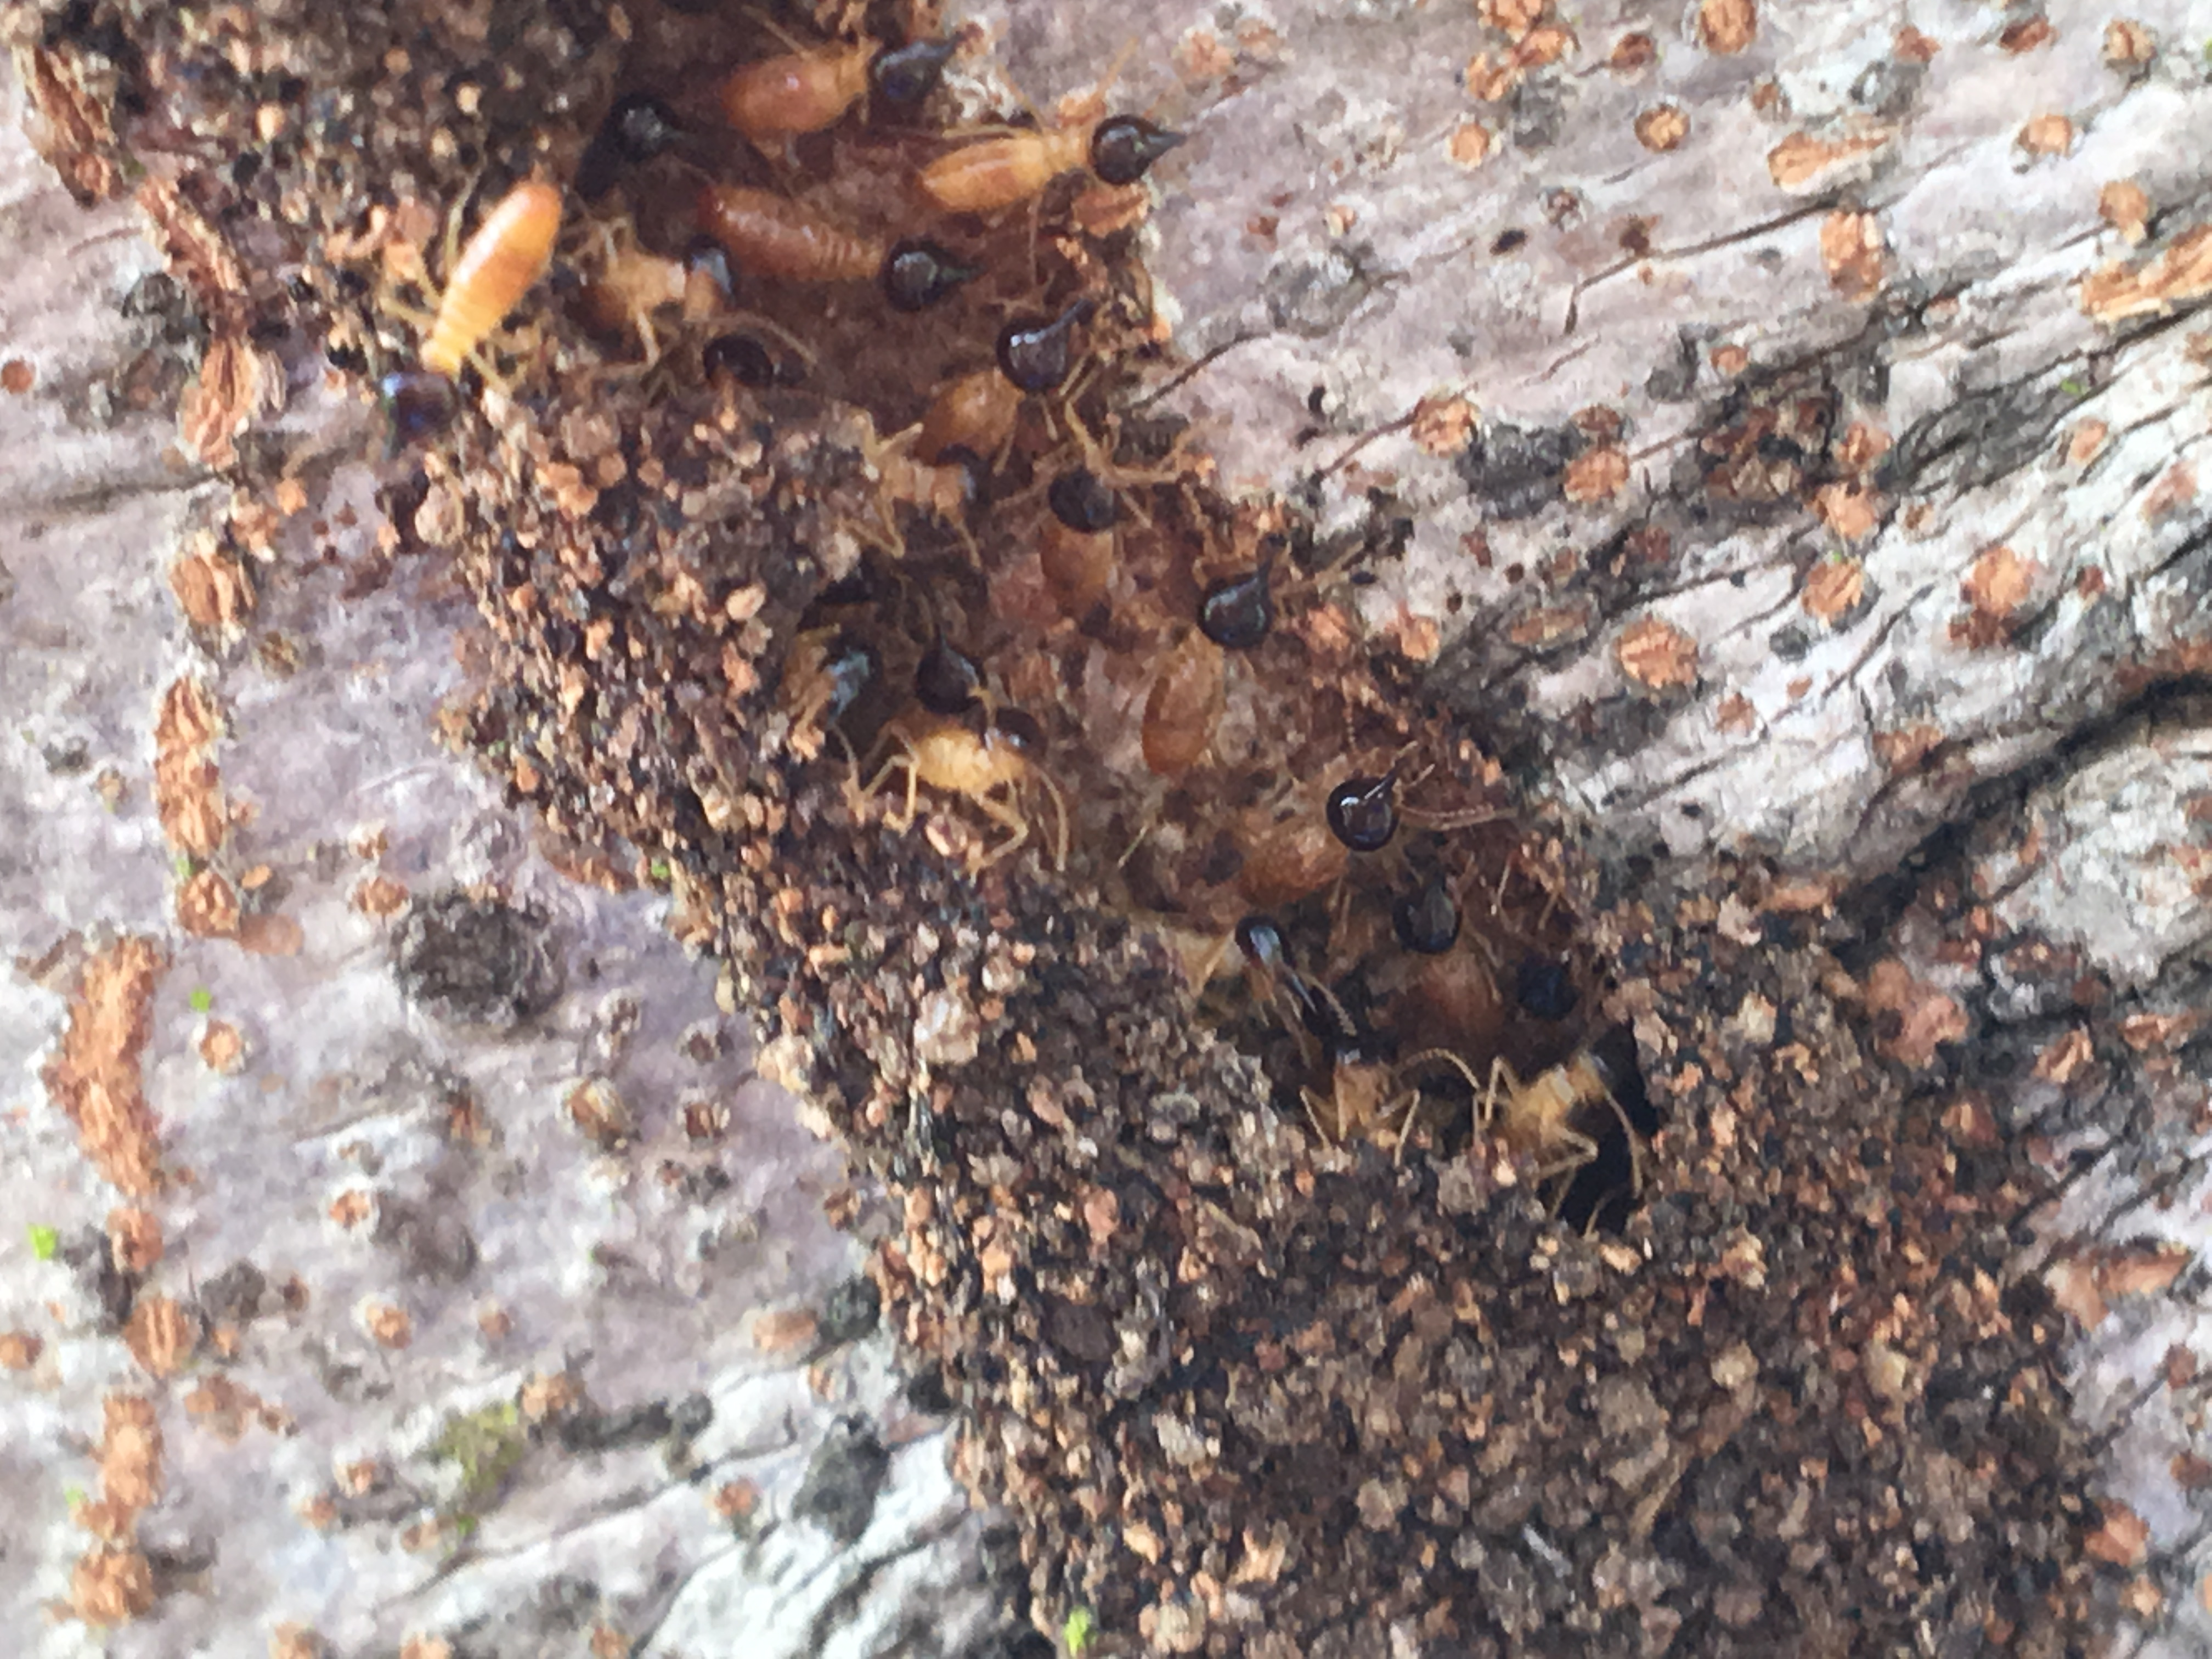 Nausititerme mud lead as Soldier Termites defend colony